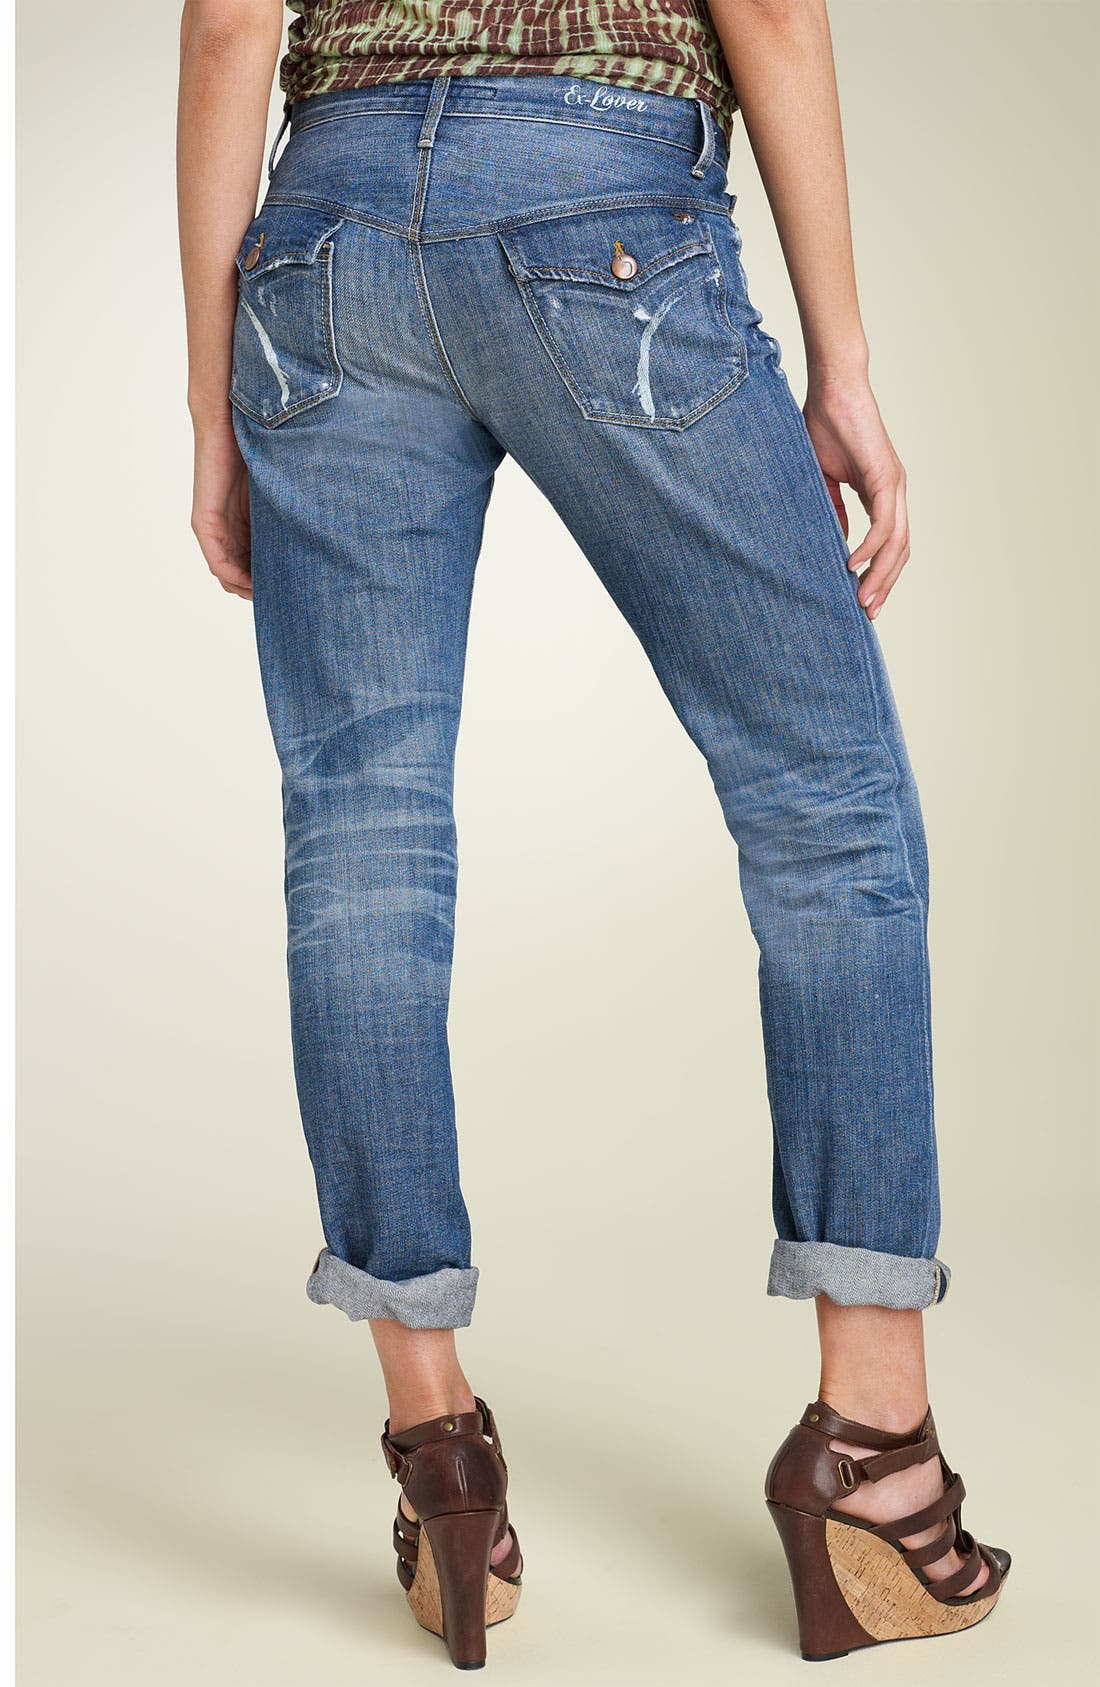 Jeans 'Ex-Lover' Stretch Boyfriend Jeans,                         Main,                         color, Shae